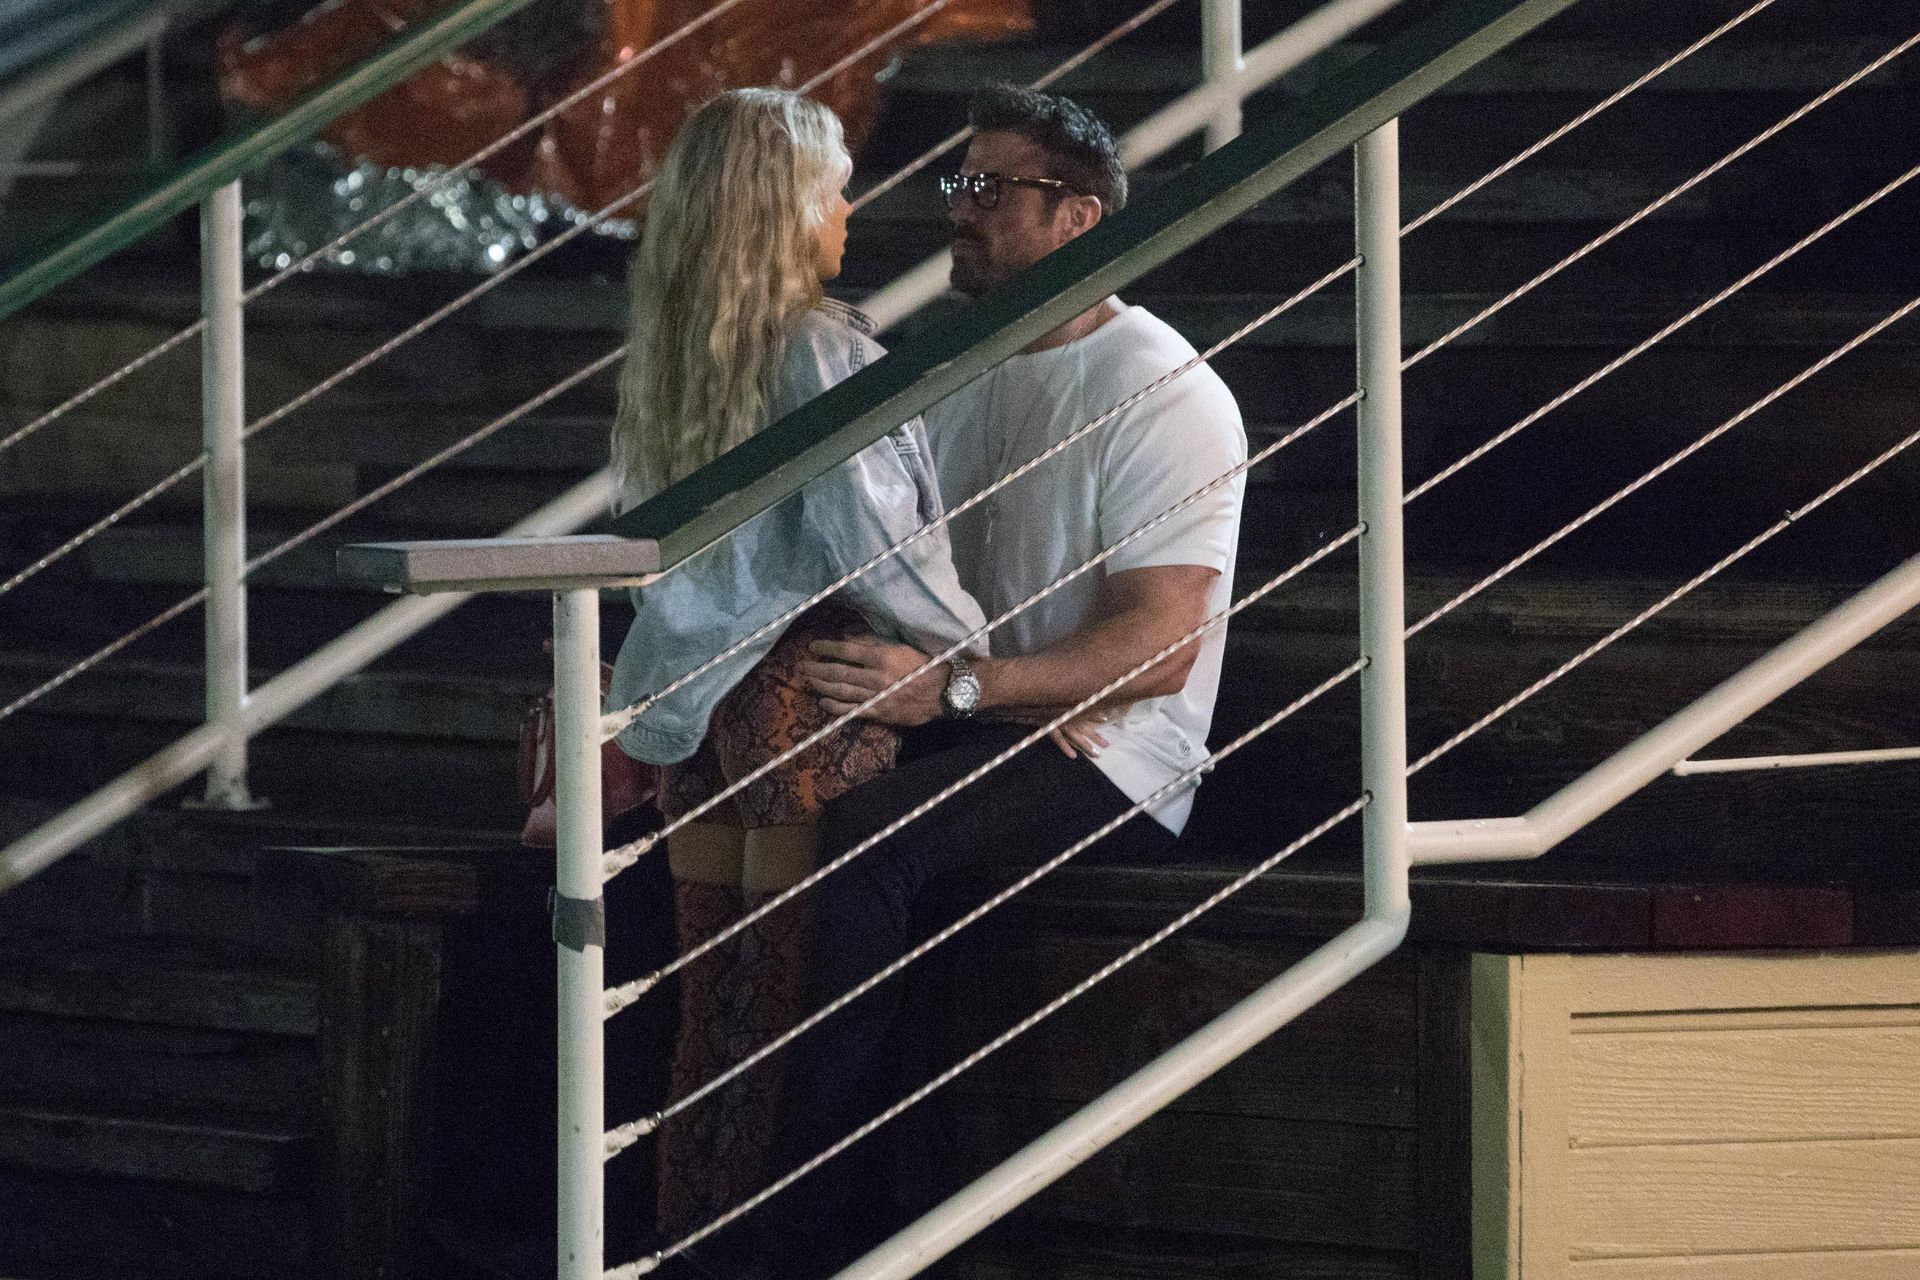 Chad Johnson & Annalise Mishler Are Seen On A Low Key Date At The Santa Monica Pier 0007